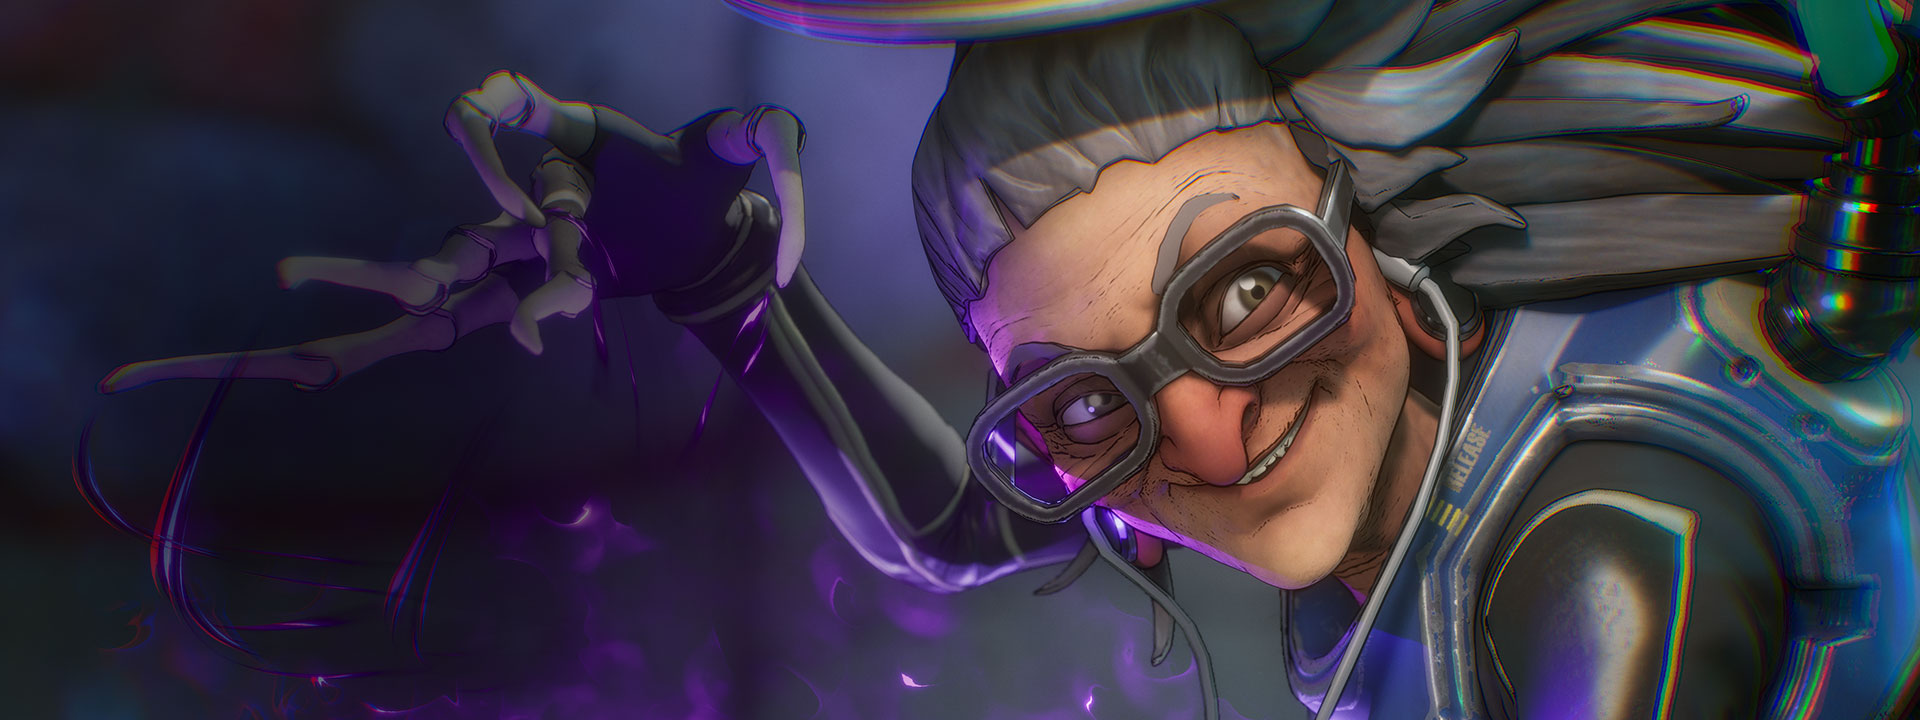 Character Maeve with grey hair, glasses and earphone with purple sparks coming out of her hand